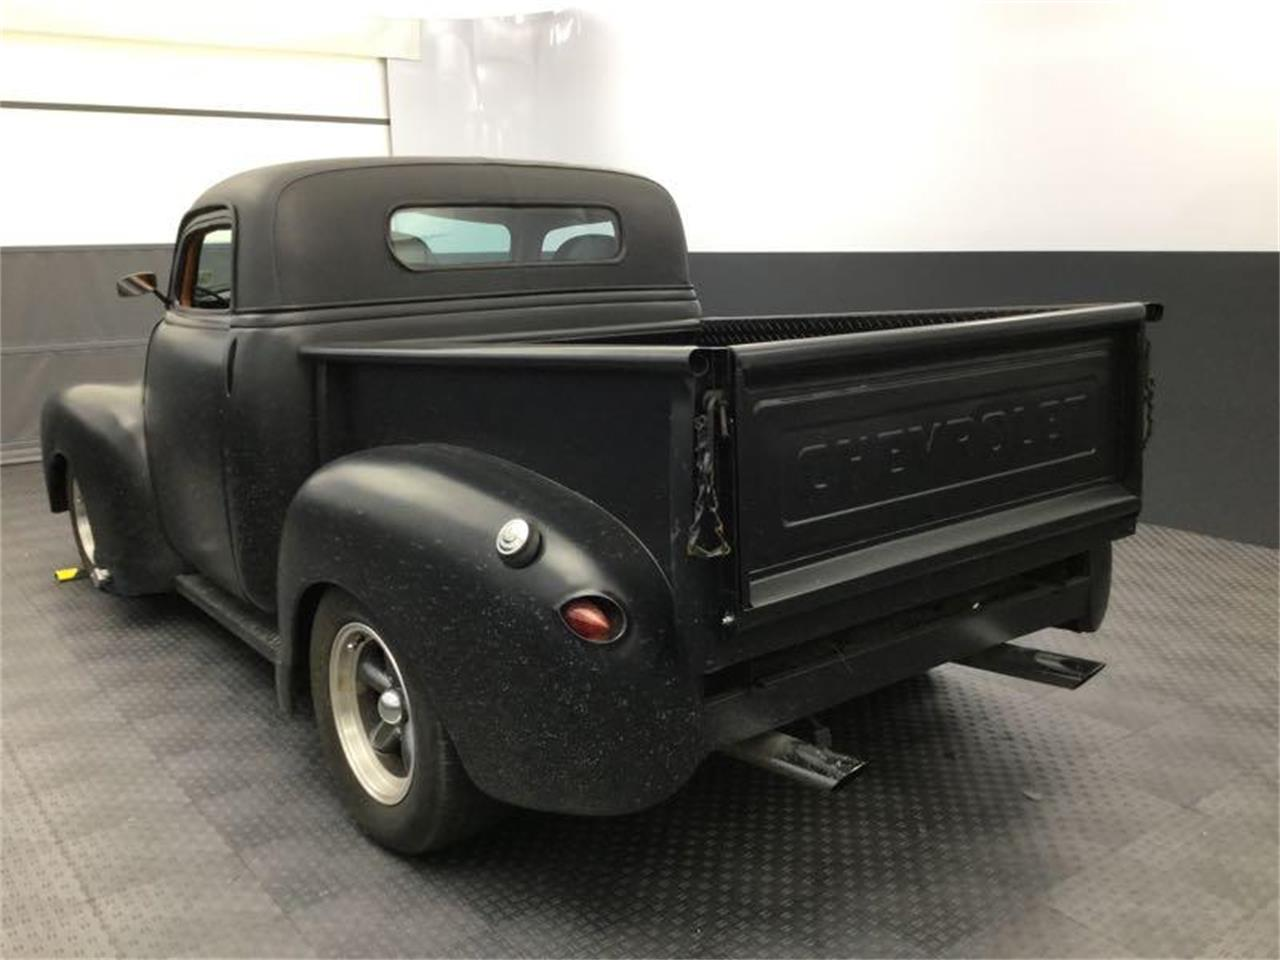 Large Picture of Classic 1955 Chevrolet Pickup located in Richmond Virginia Auction Vehicle Offered by Motley's Richmond Auto Auction - R1UO